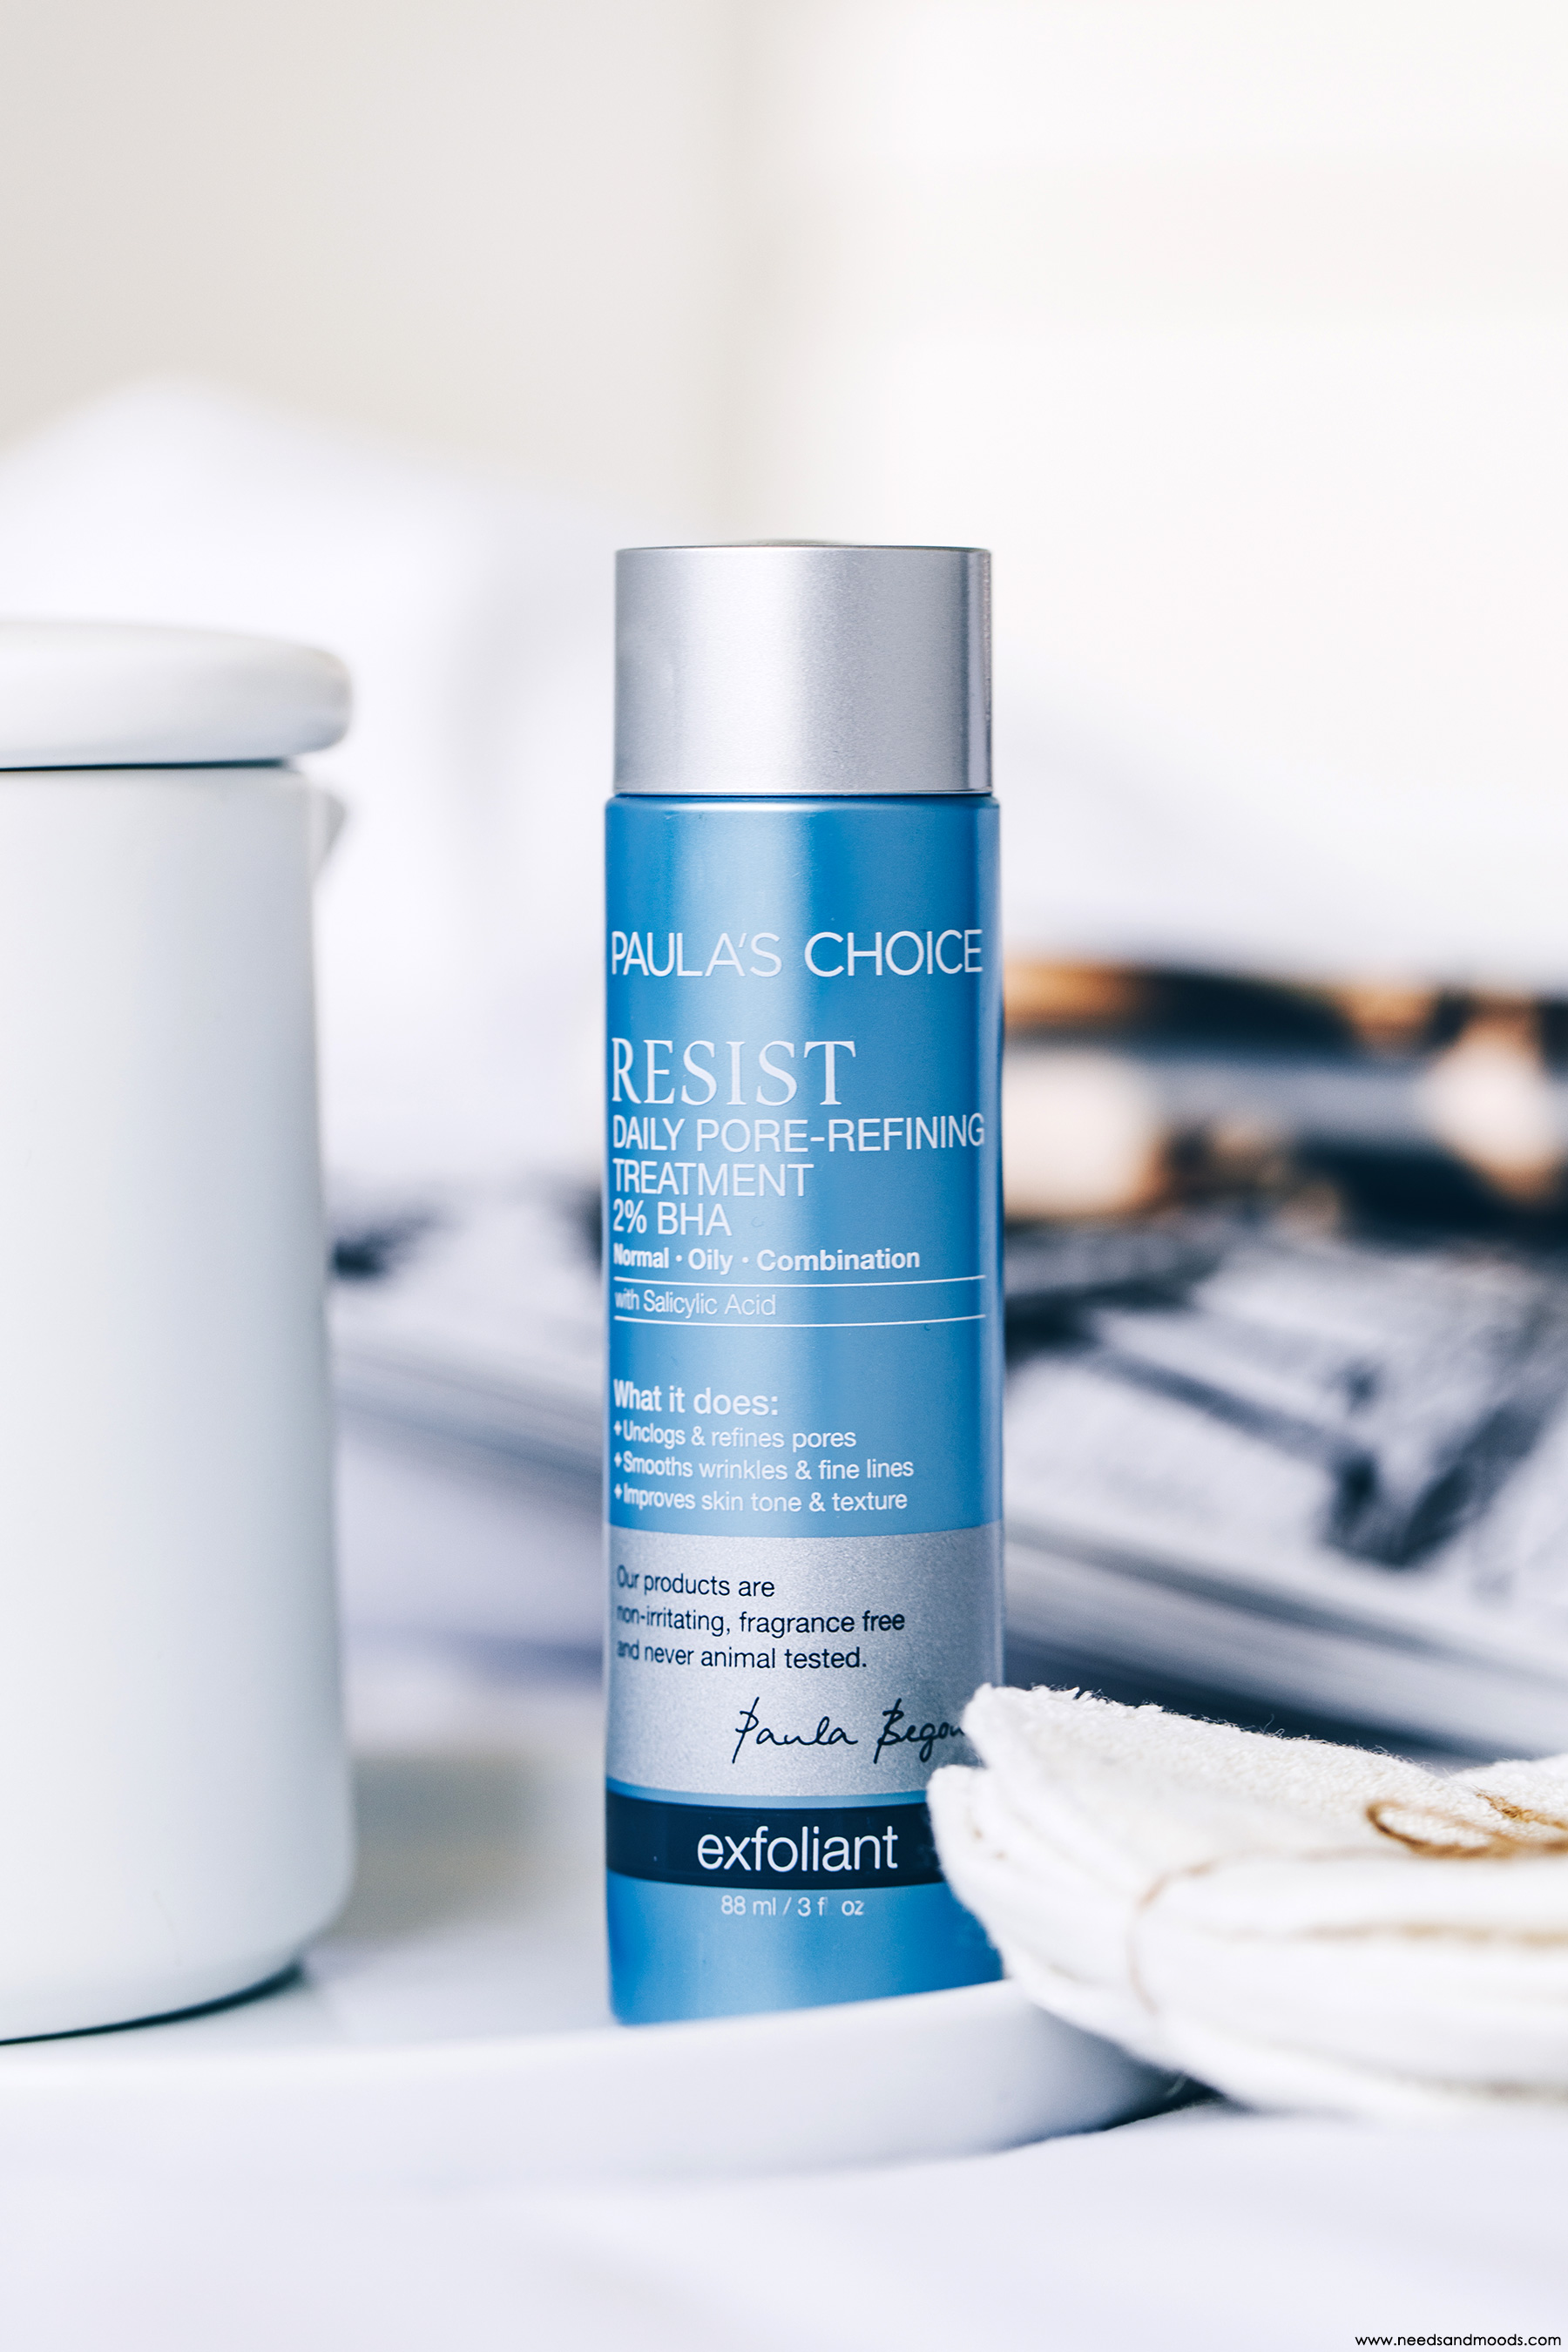 paula's choice resist daily pore refining treatment BHA